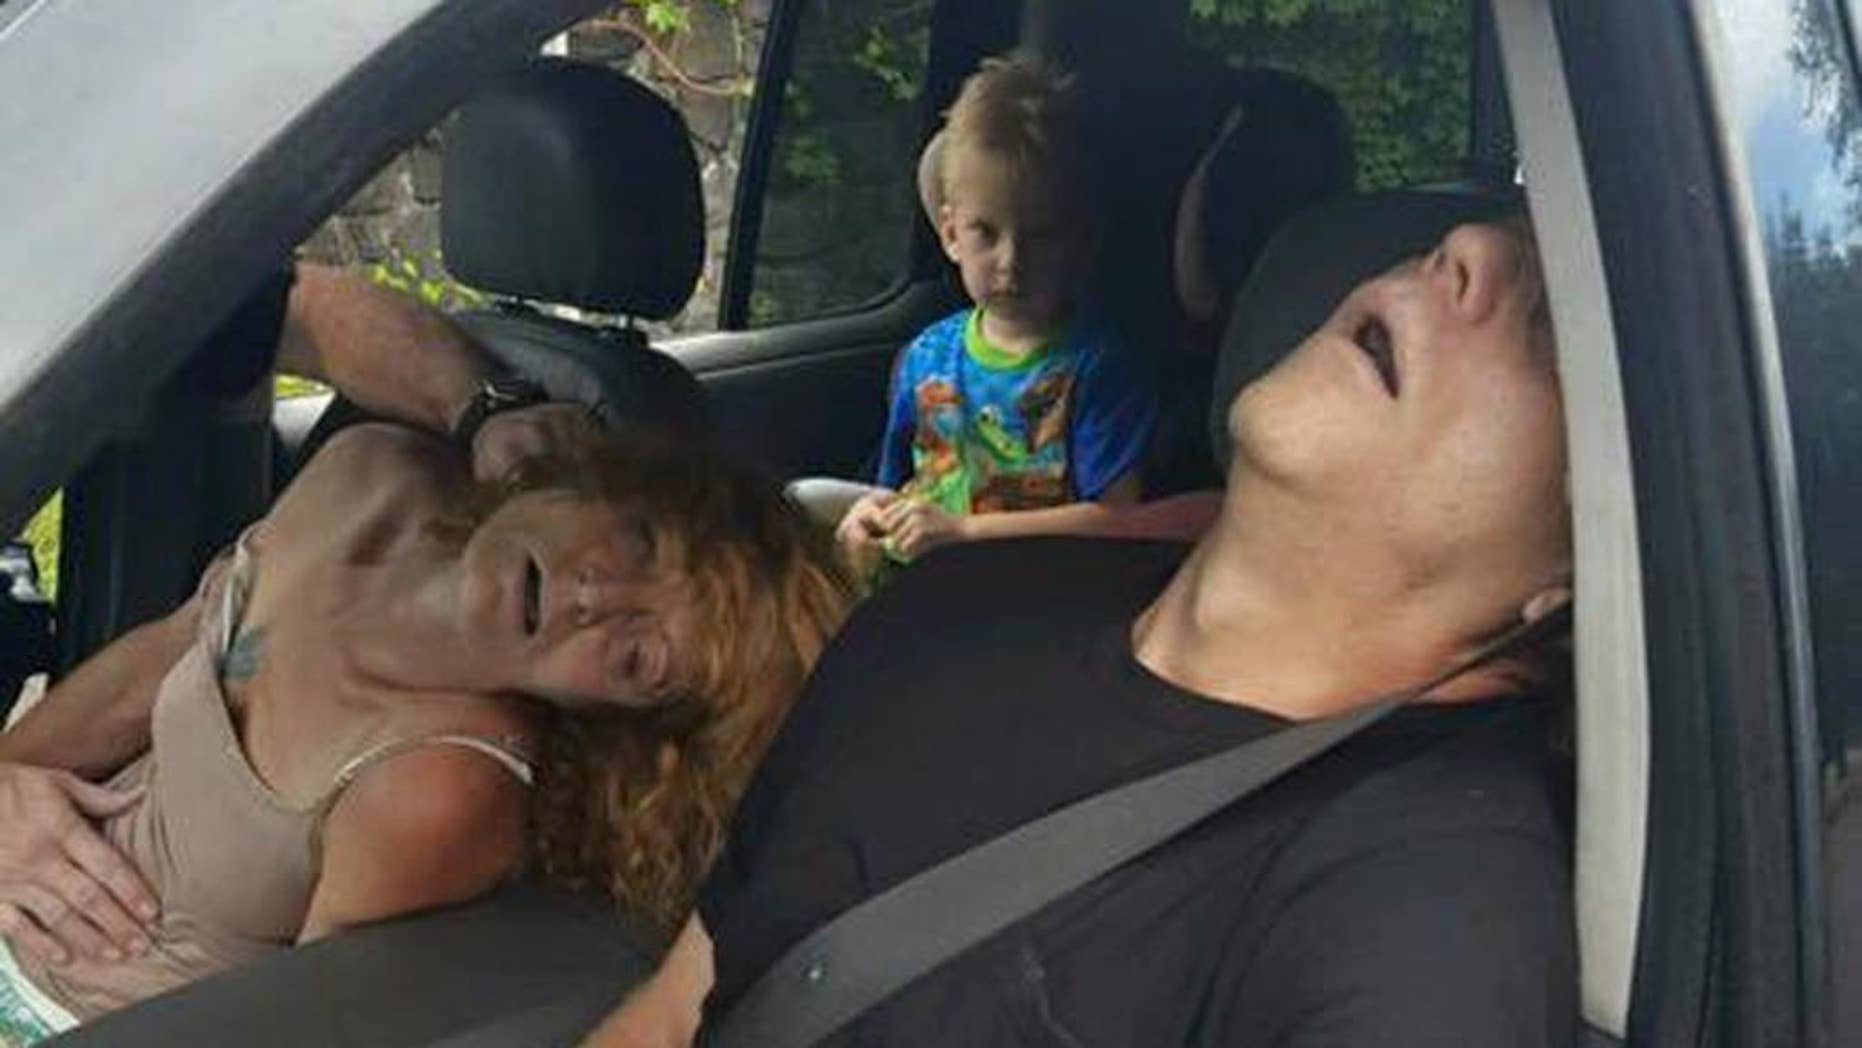 FILE - In this Wednesday, Sept. 7, 2016, file photo, released by the East Liverpool Police Department, a young child sits in a vehicle behind his grandmother, Rhonda Pasek and her boyfriend, James Acord, both of whom are unconscious from a drug overdose, in East Liverpool, Ohio. An Ohio judge has turned over the custody of the boy. A Columbiana County Juvenile Court administrator told The Associated Press that the boy's great uncle and great aunt petitioned the court for custody, which was granted by a judge on Monday, Sept. 12. (East Liverpool Police Department via AP, File)